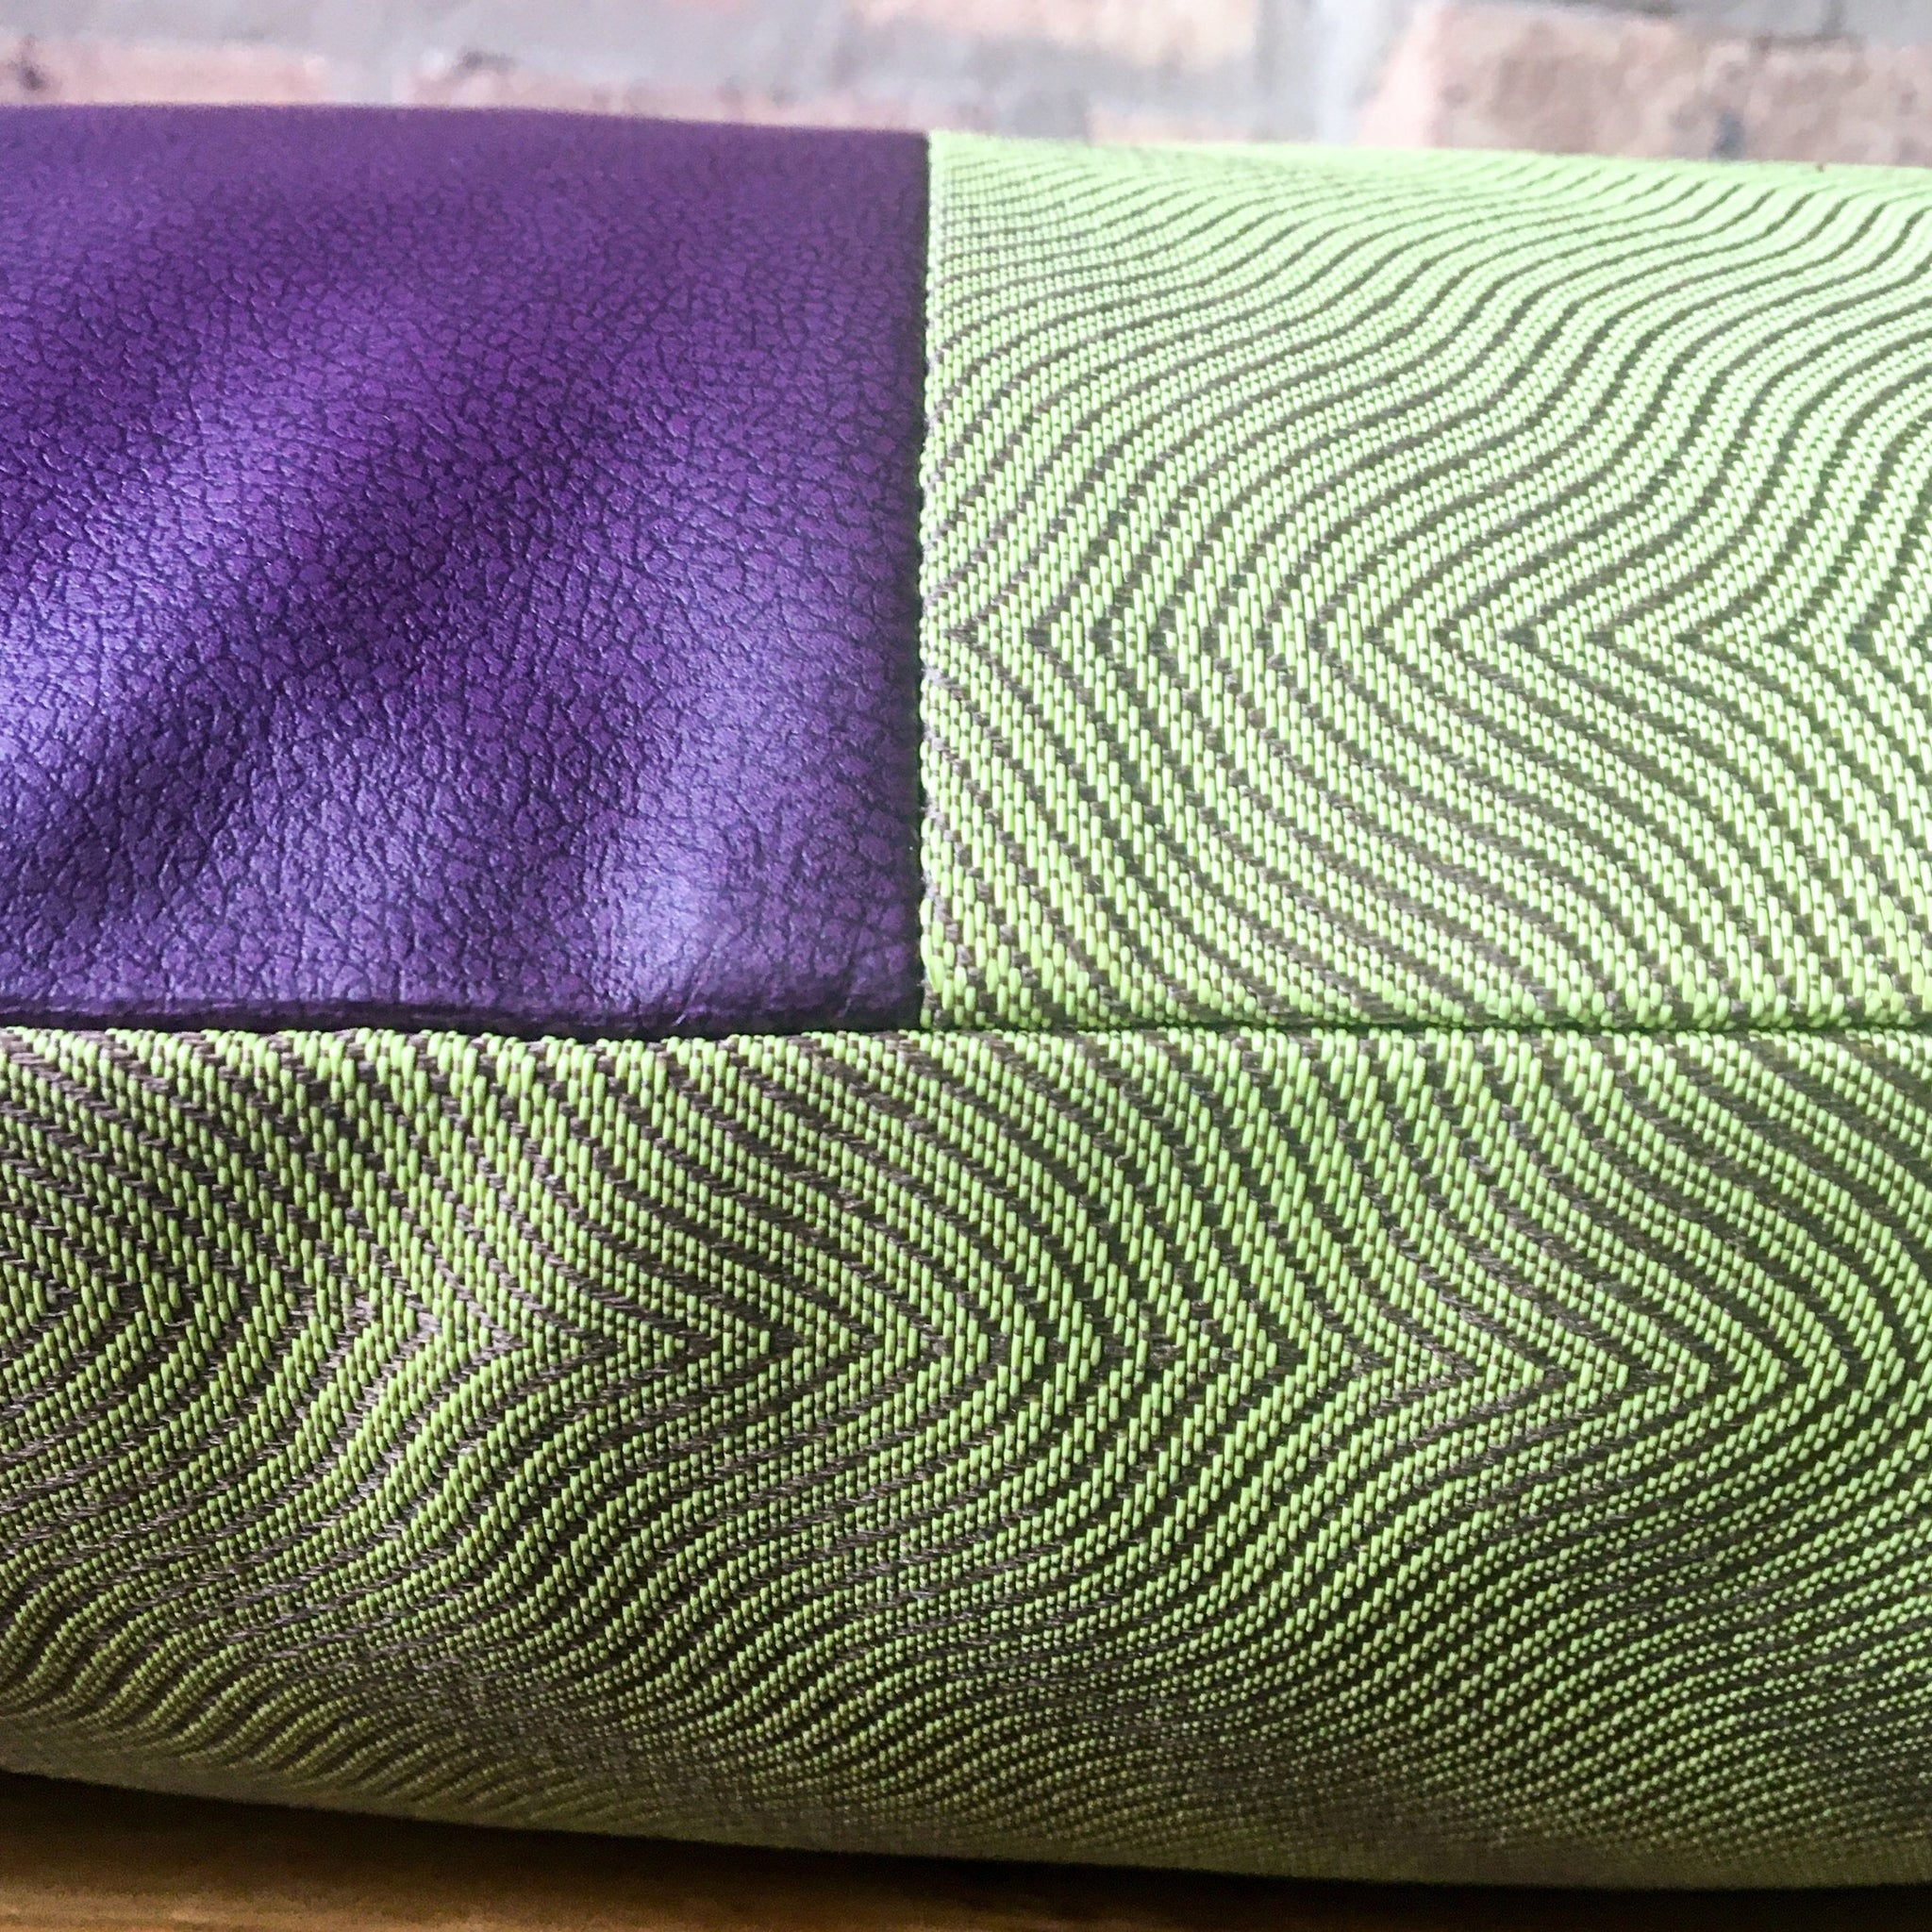 Color Block 18x18 Purple and Chartreuse Outdoor Pillow Covers | Waterproof | Water Resistant | Handmade in USA